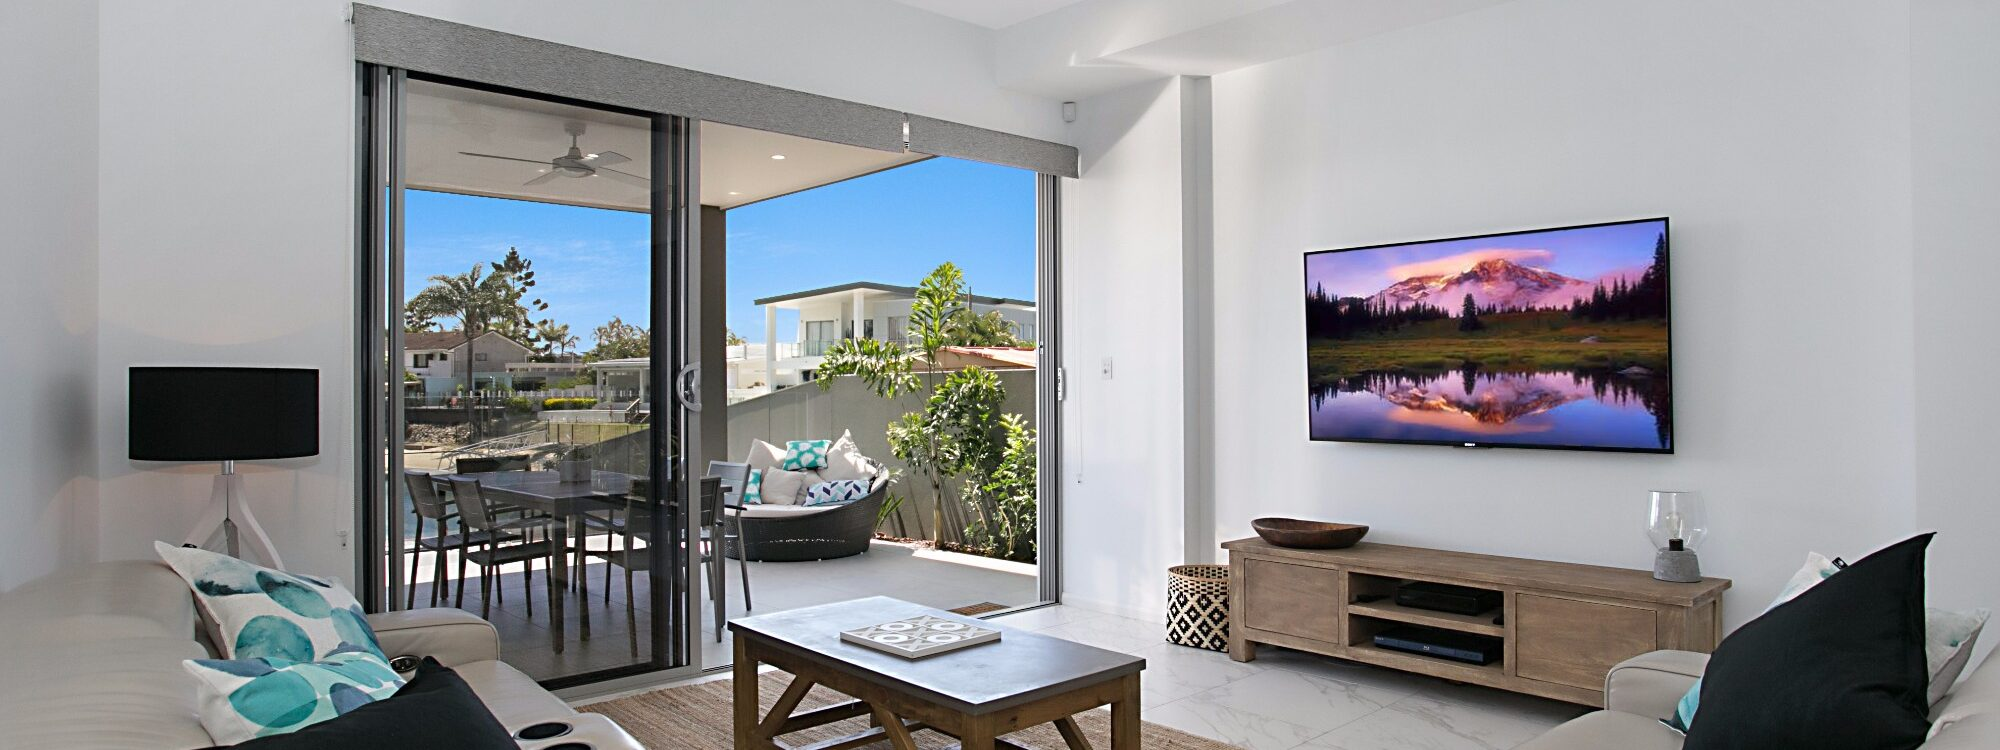 Pacific Breeze - Broadbeach - Living area